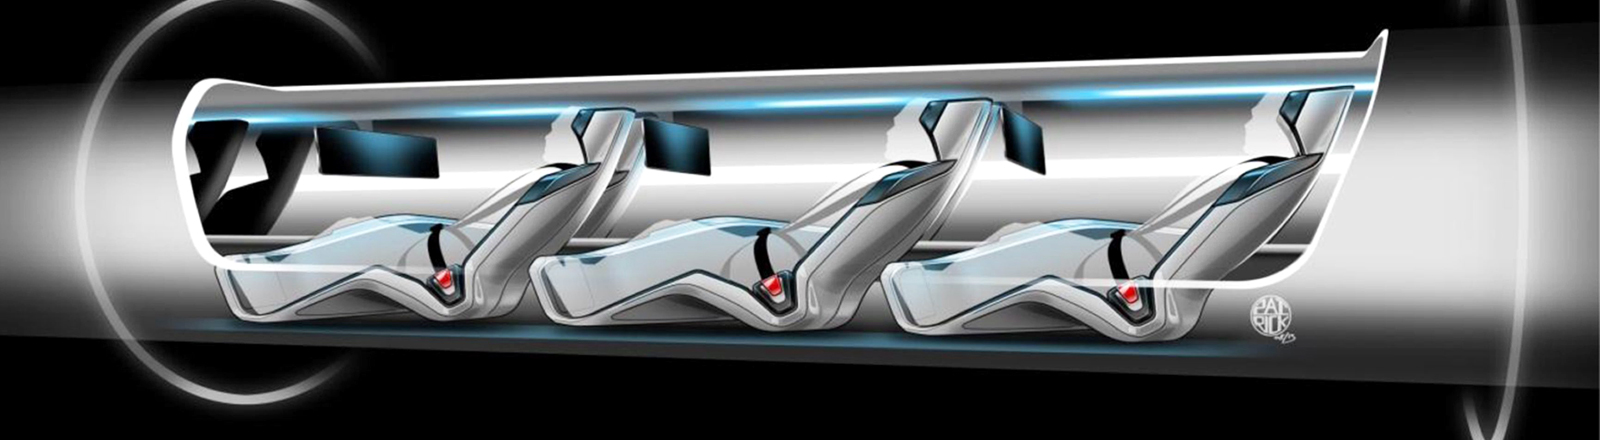 Animation einer Hyperloop-Kapsel